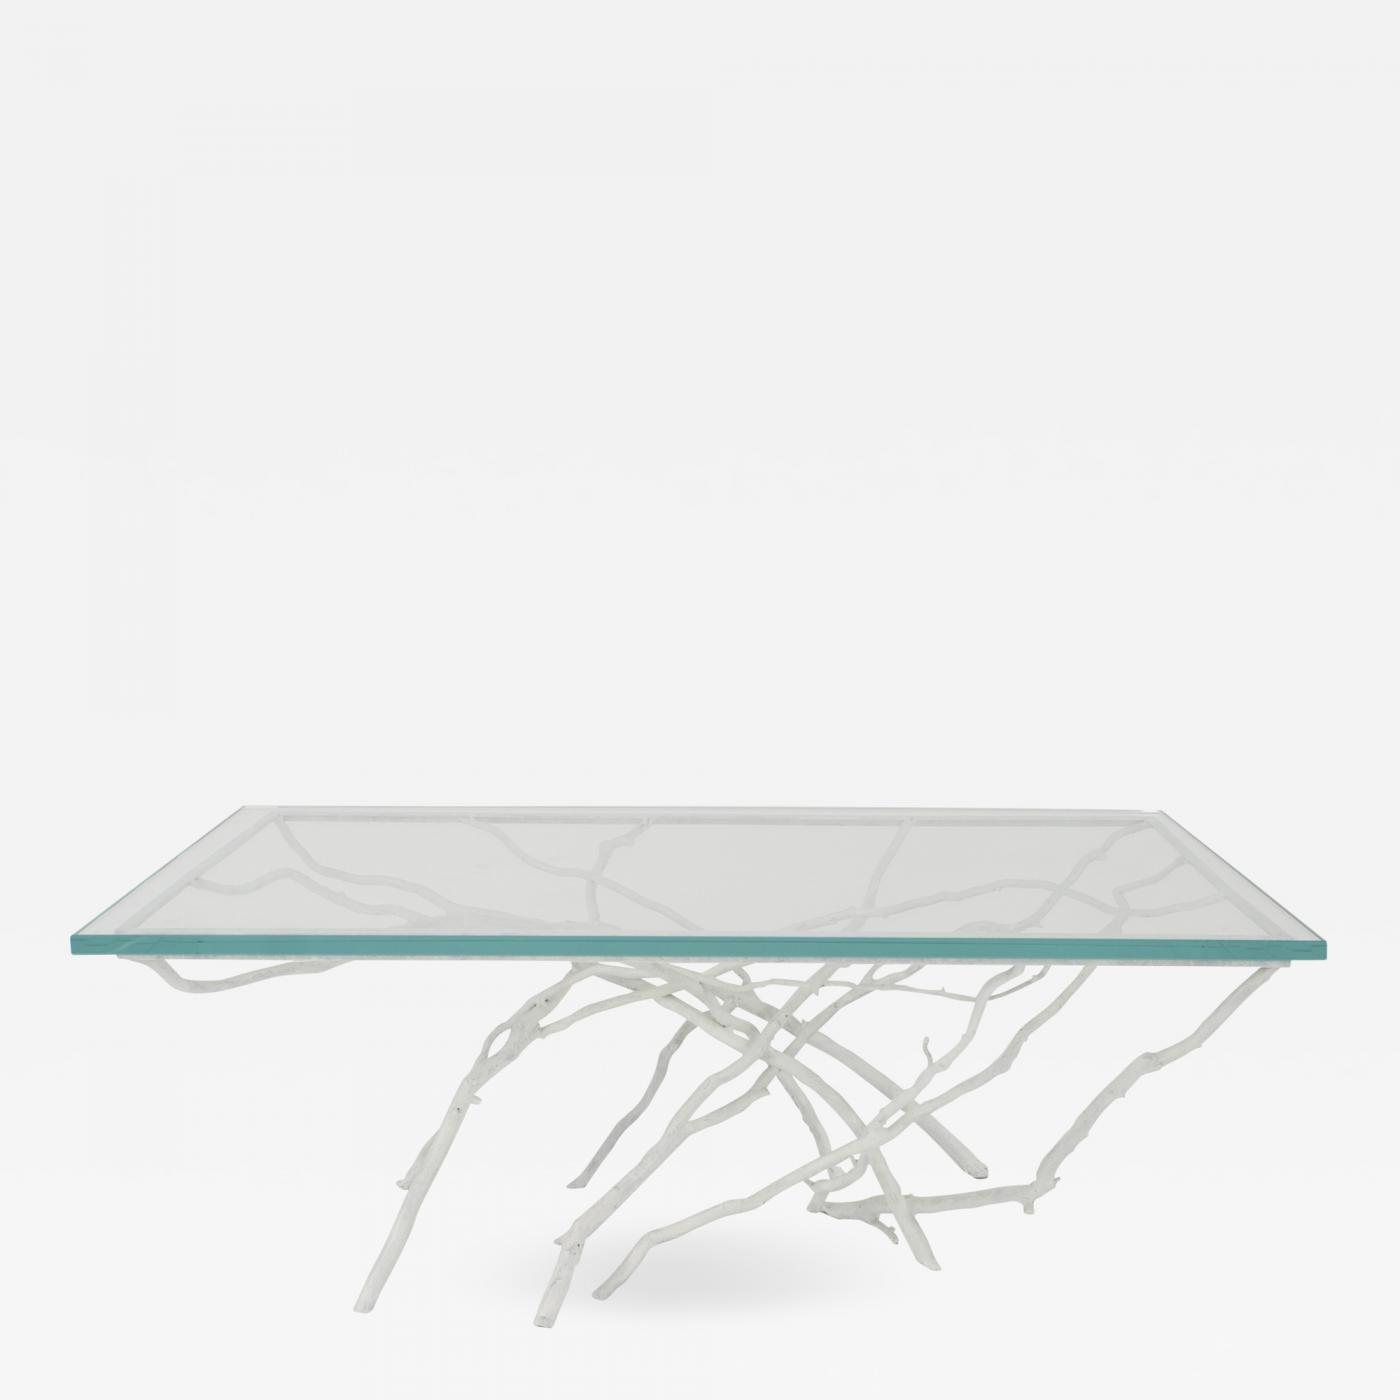 Magnificent Joan Sherman Contemporary White Painted Iron Faux Twig Design Rectangular Coffee Table Onthecornerstone Fun Painted Chair Ideas Images Onthecornerstoneorg